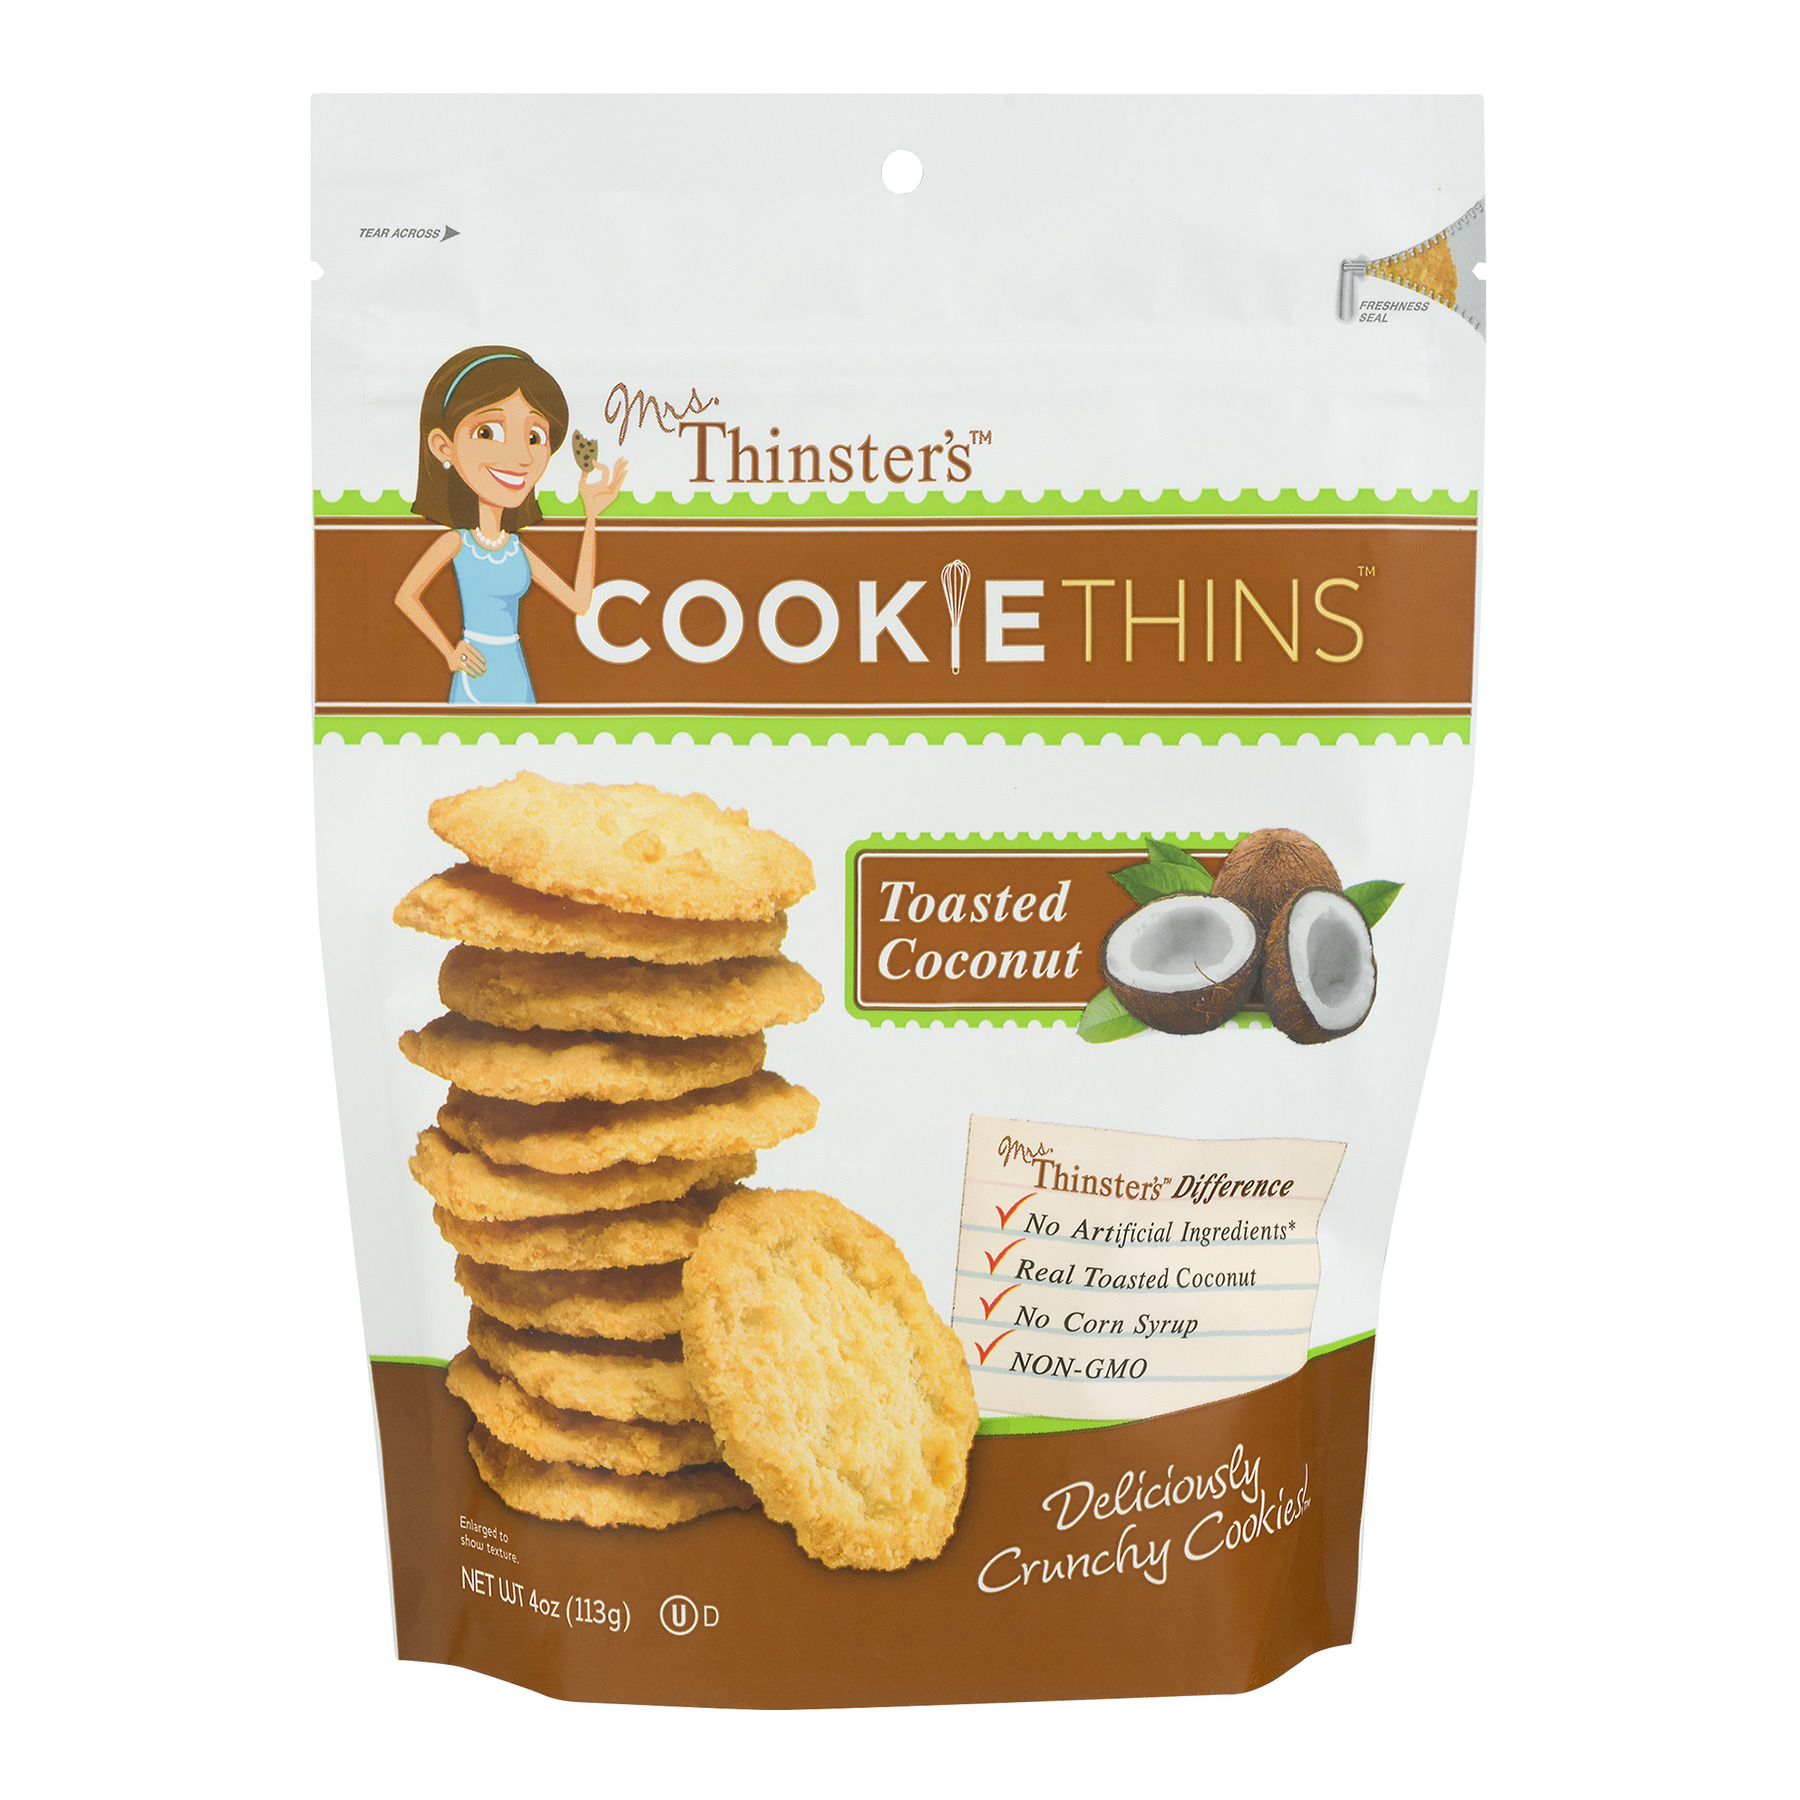 (2 Pack) Mrs. Thinster's Toasted Coconut Cookie Thins, 4 oz